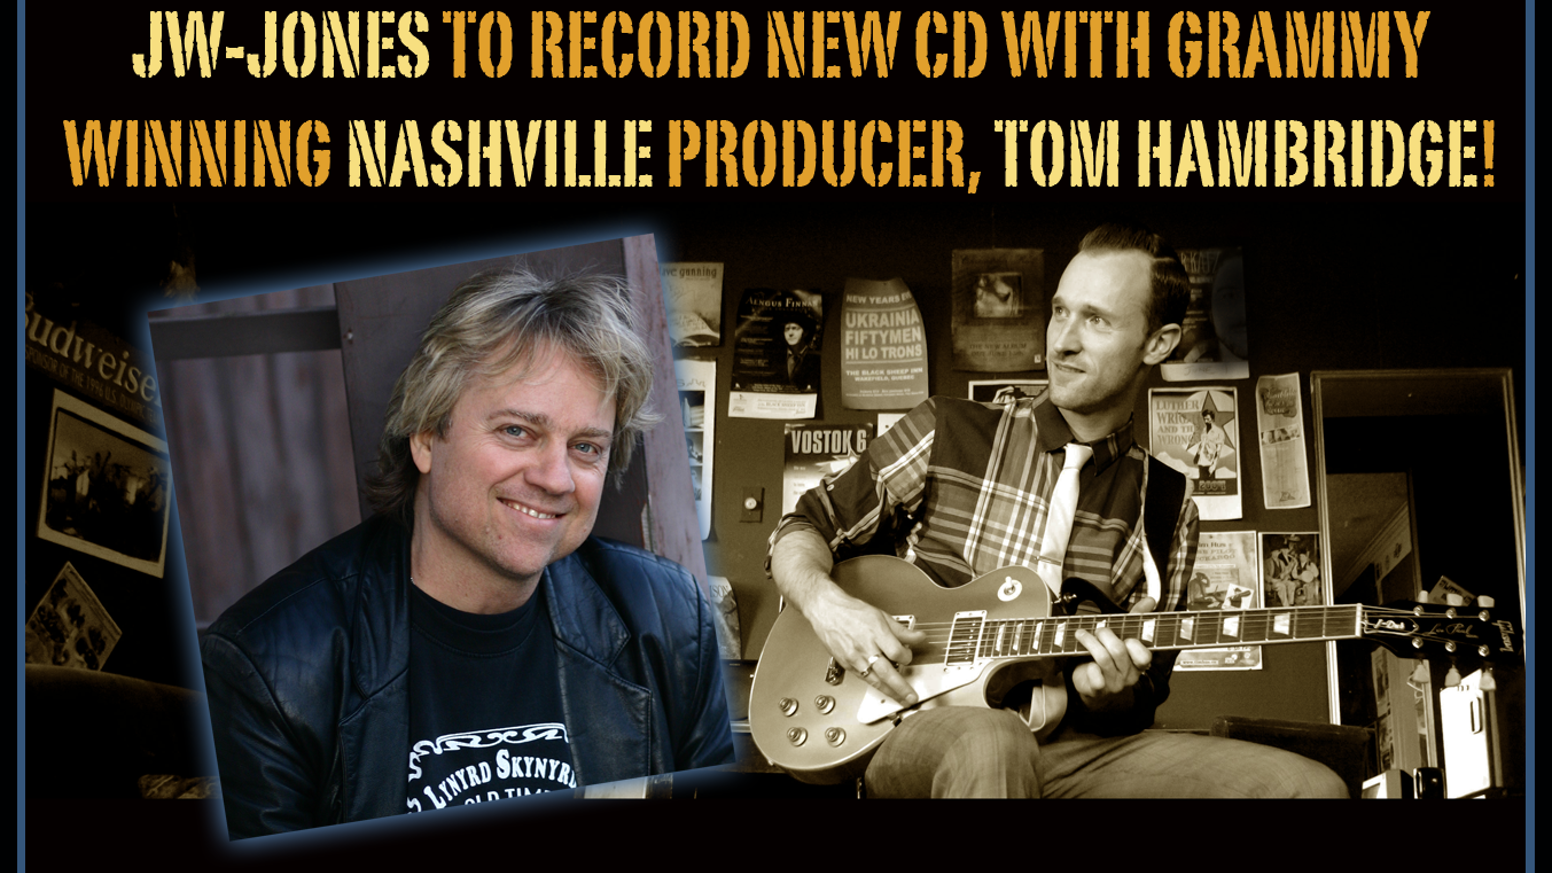 JW-Jones to record new CD with Grammy winning producer, Tom Hambridge. He's saved 75% of the budget but needs your help for the rest!